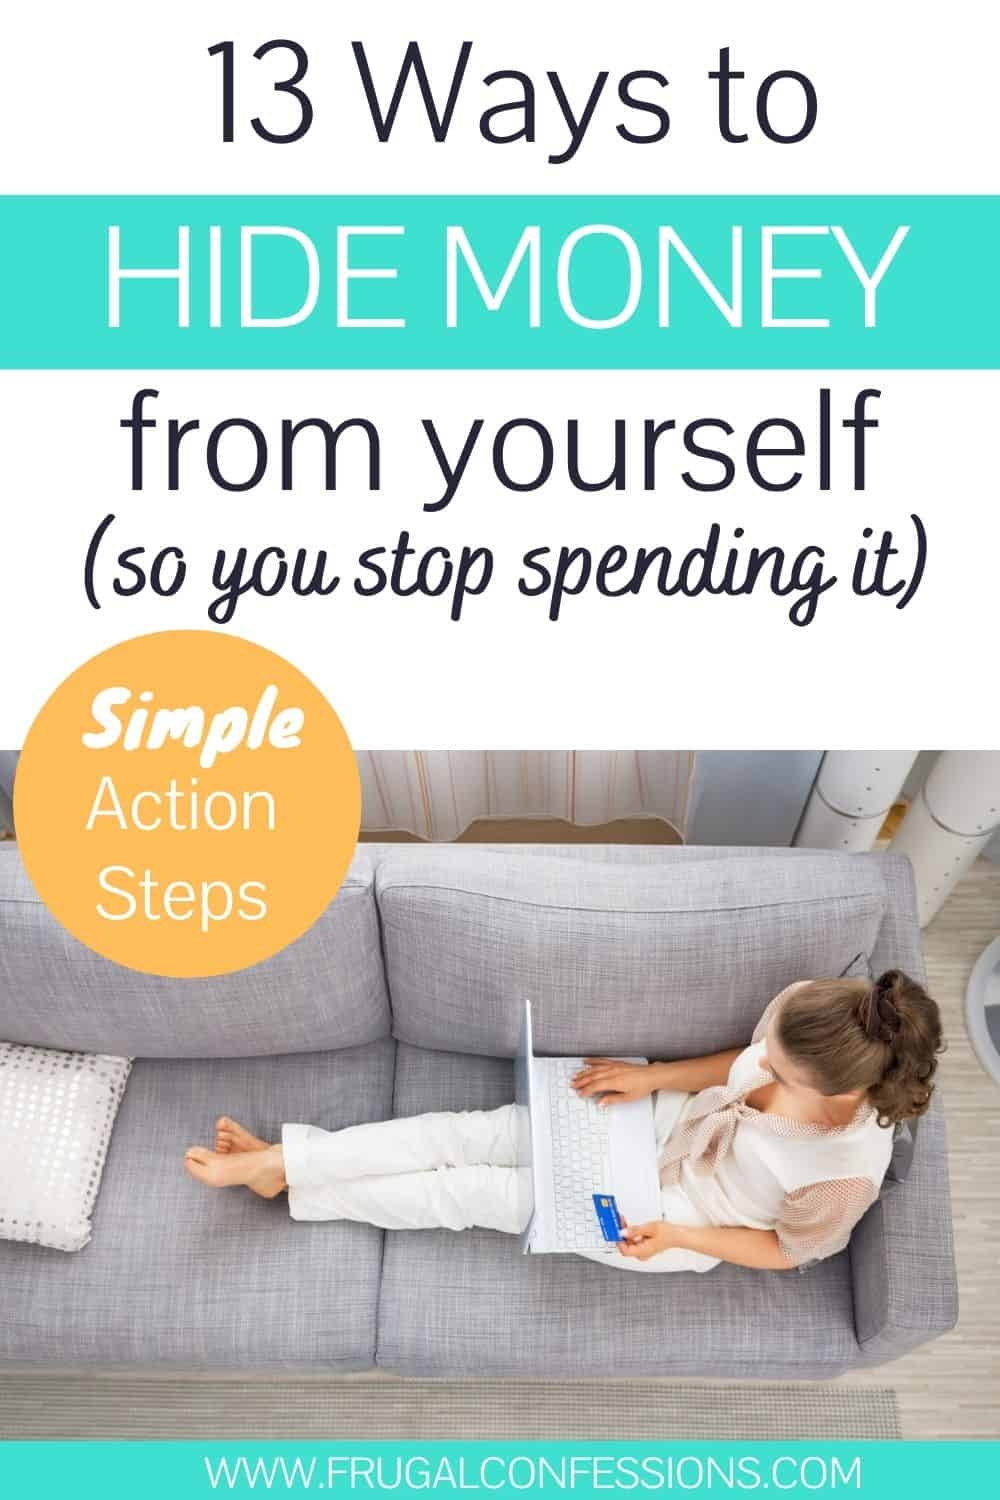 "woman with laptop and credit card on couch, shopping, text overlay ""13 ways to hide money from yourself so you stop spending it"""